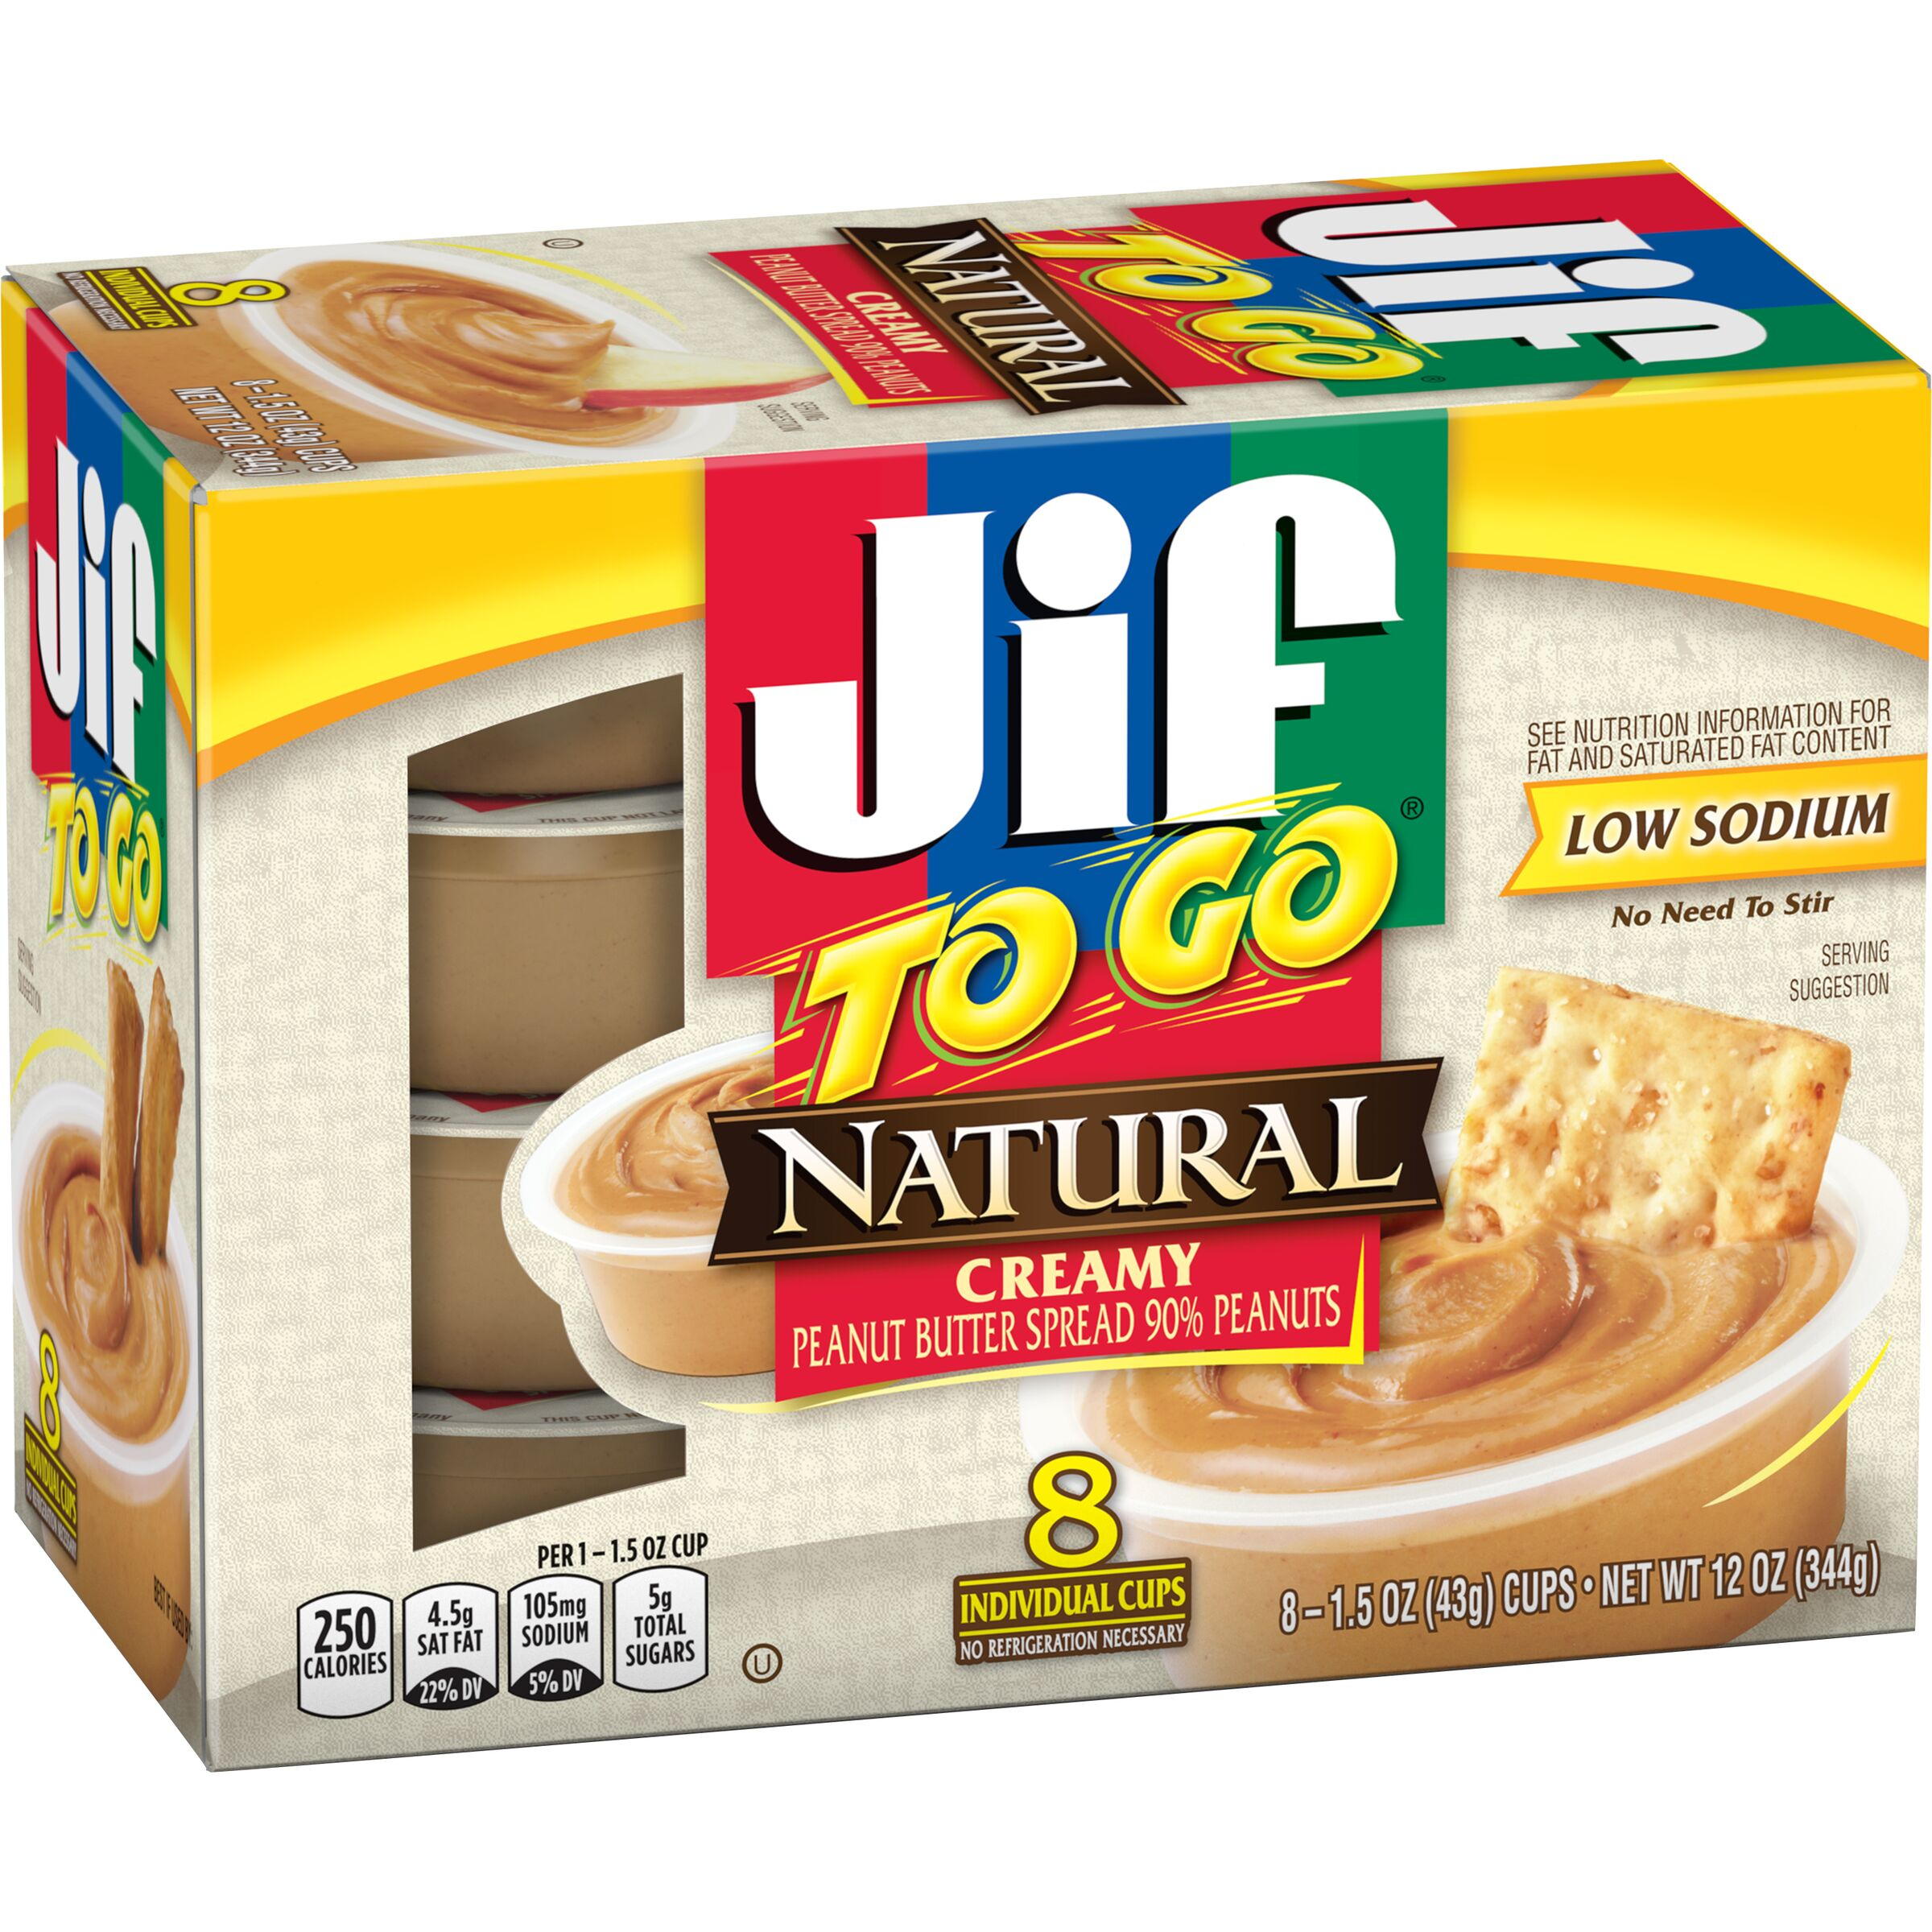 Jif<sup>®</sup> To Go Natural Creamy Peanut Butter Spread